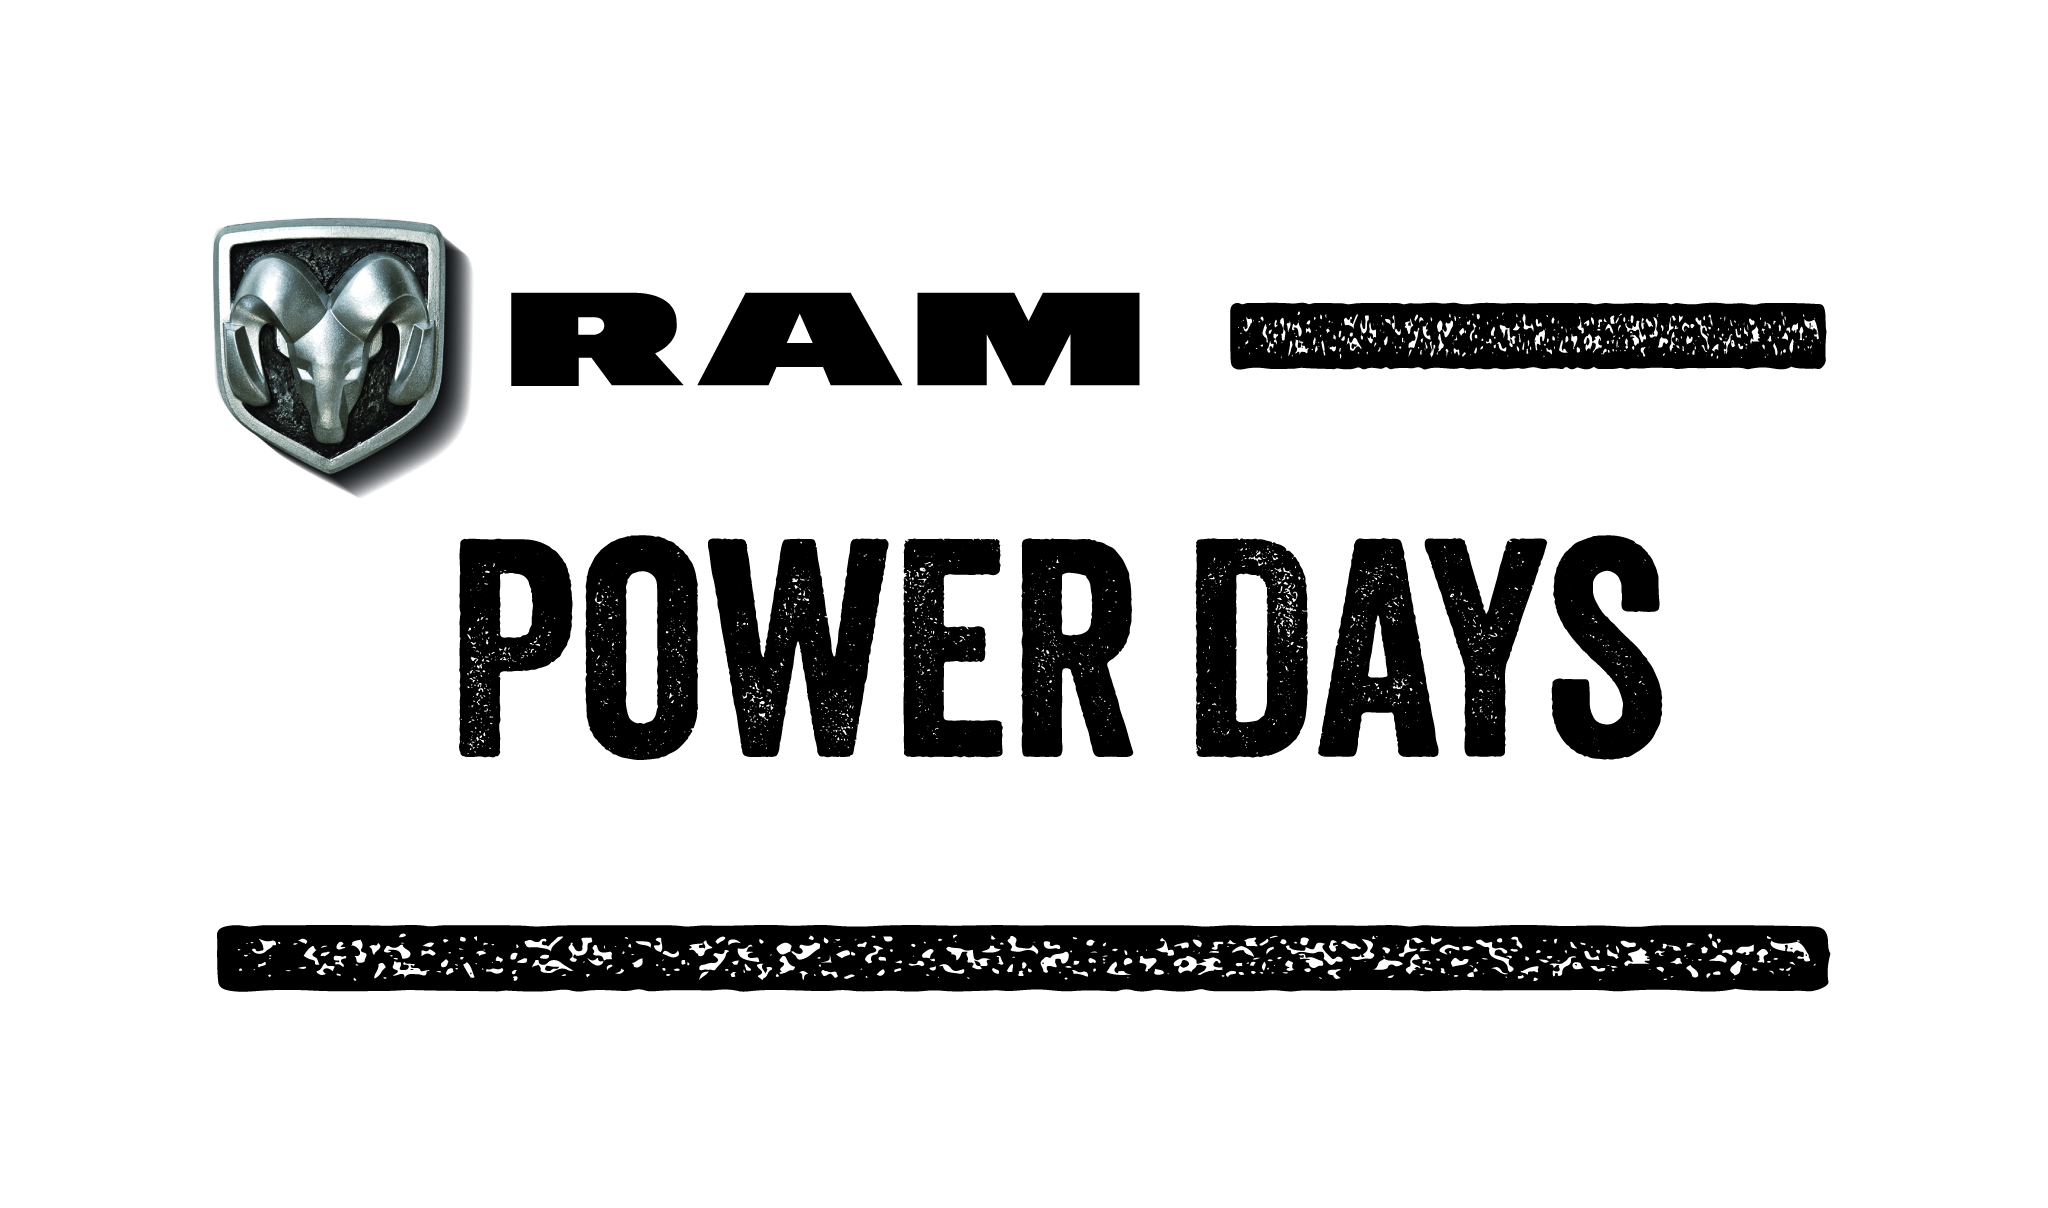 Ram Power Days in Oak Harbor, WA